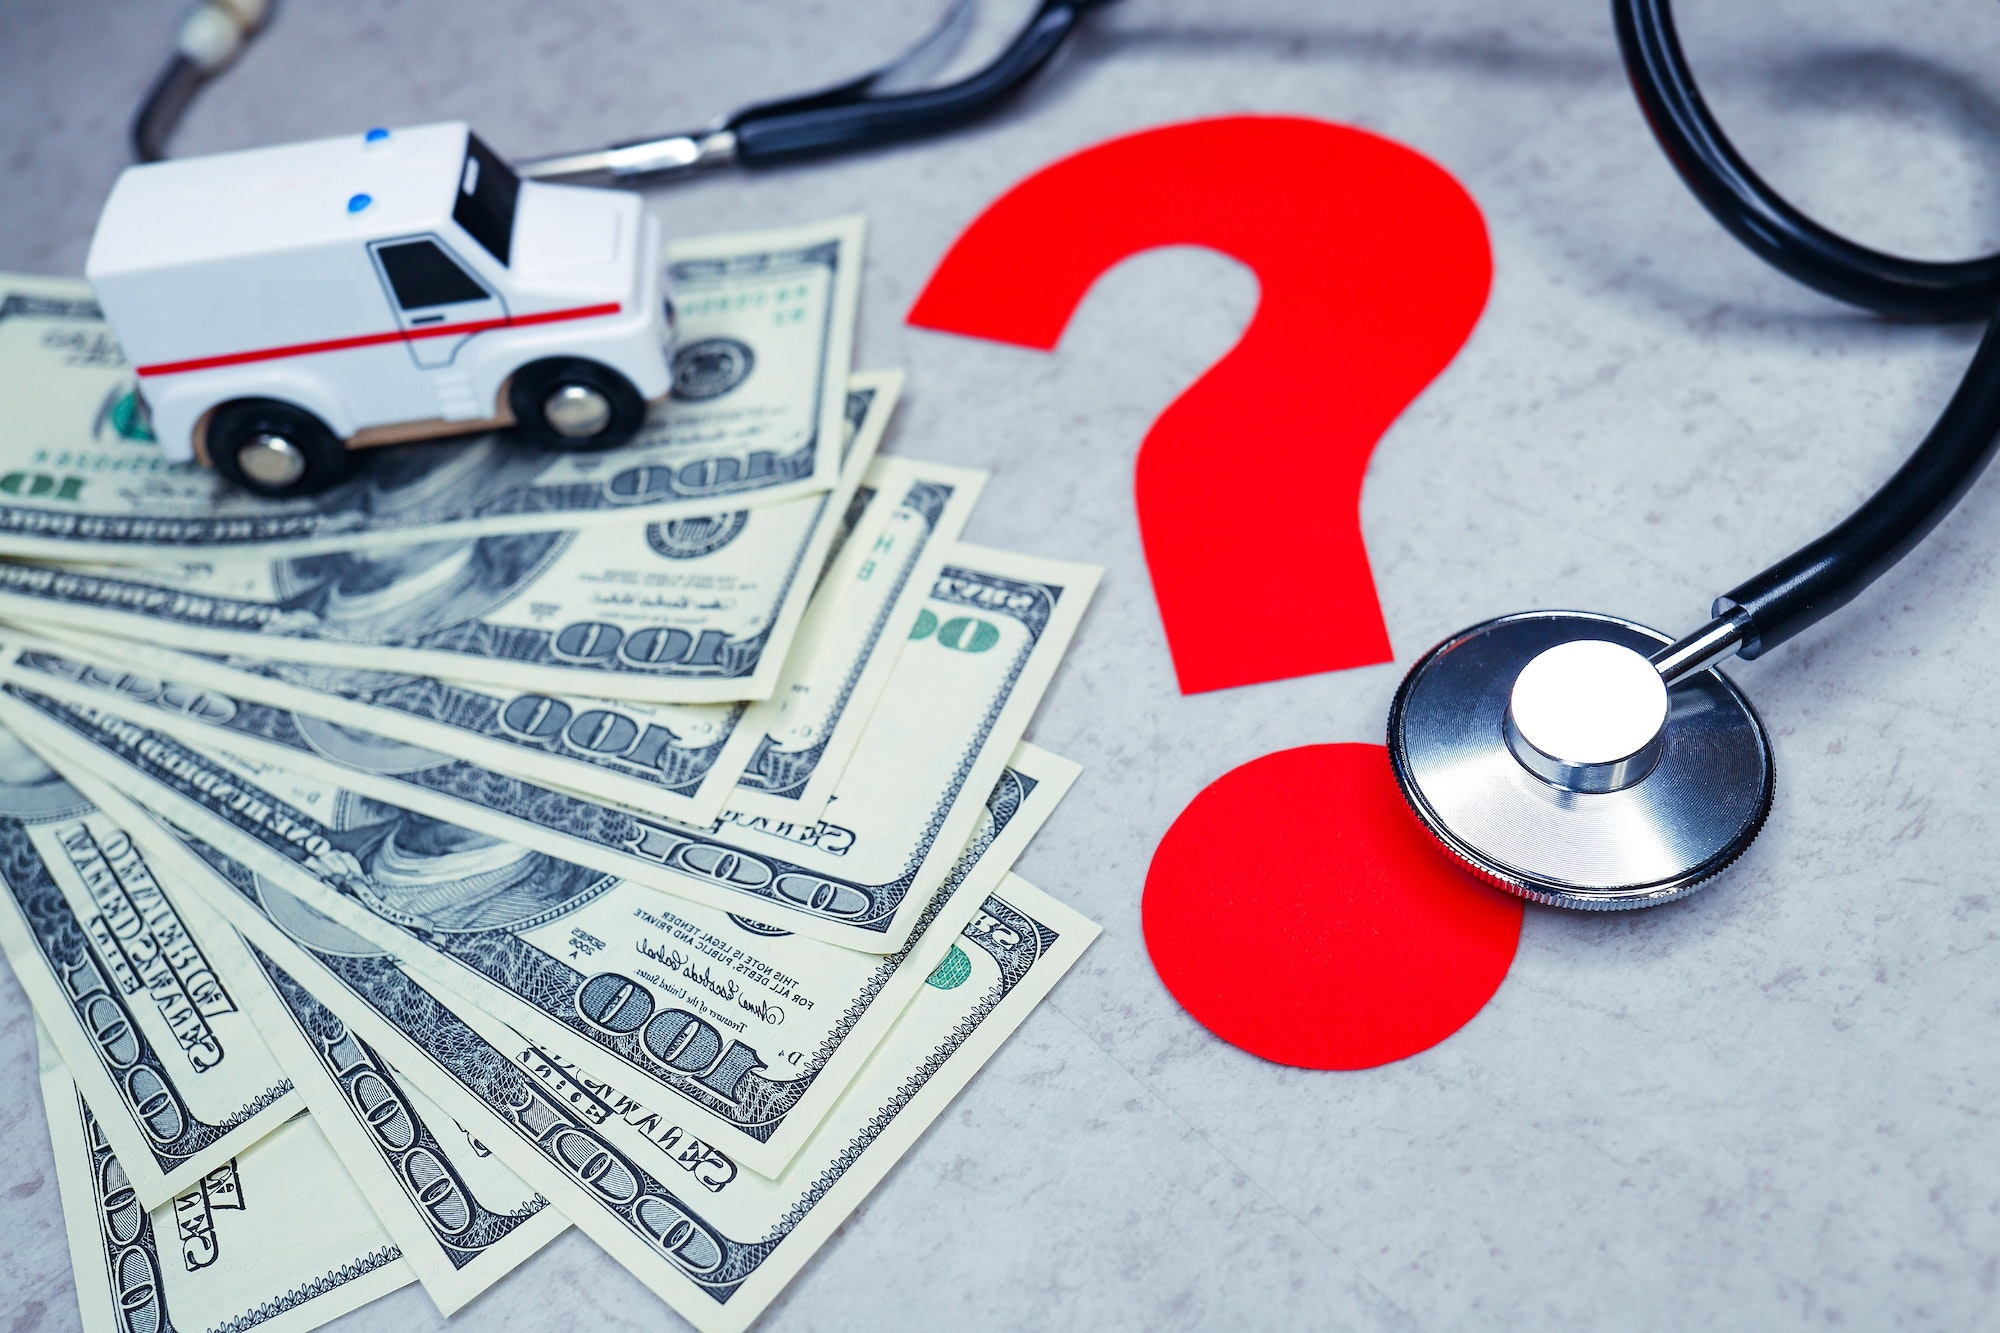 $100 bills, stethoscope, rescue squad or ambulance and red question mark